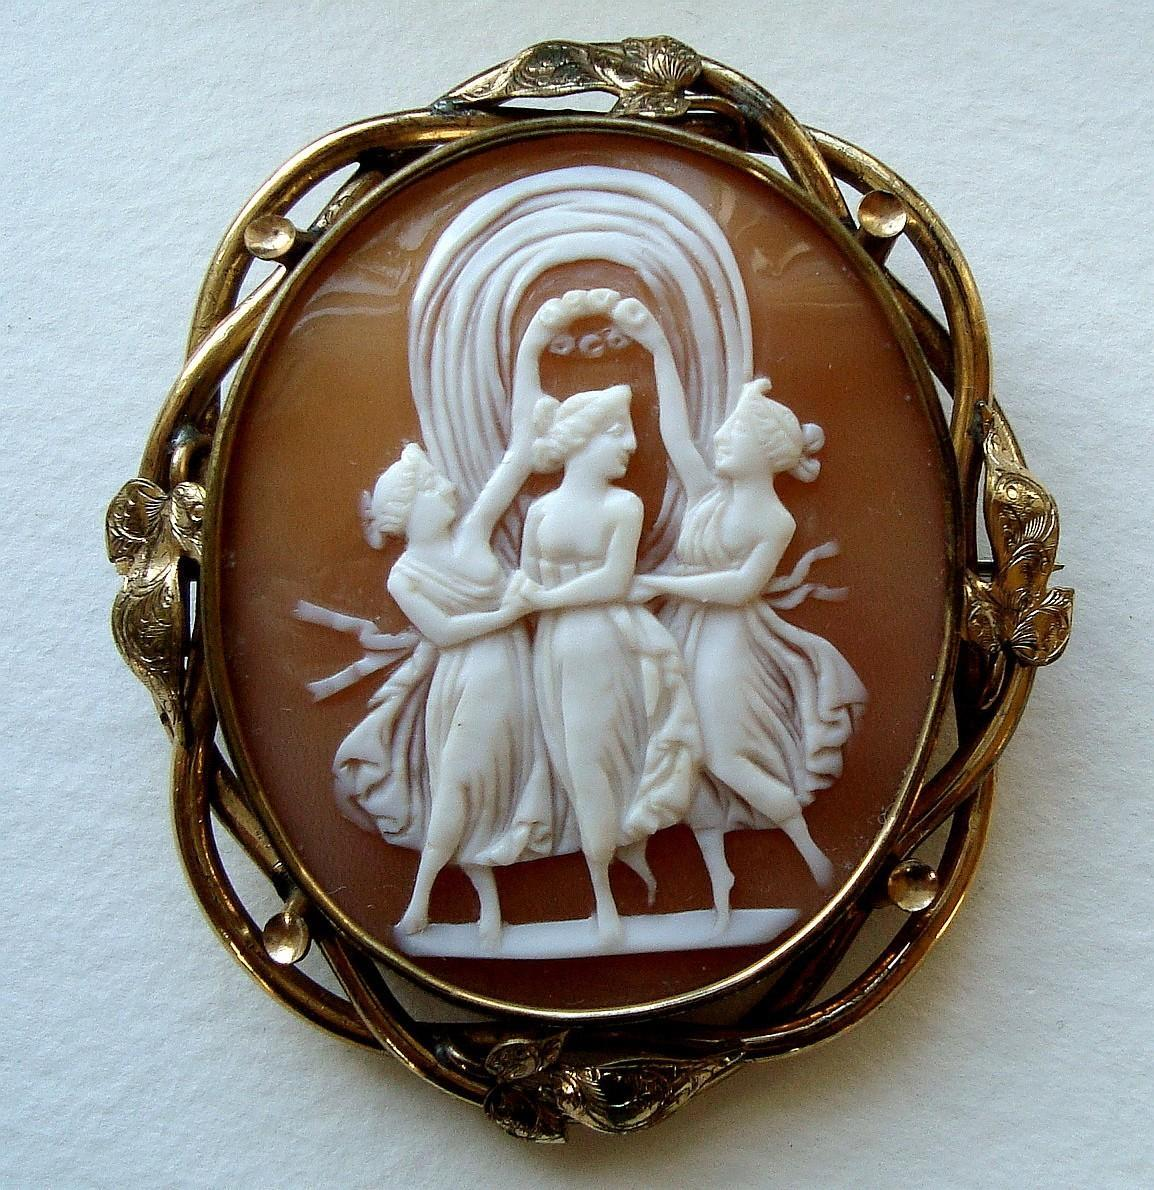 Antique Victorian Three Graces Shell Cameo Brooch from